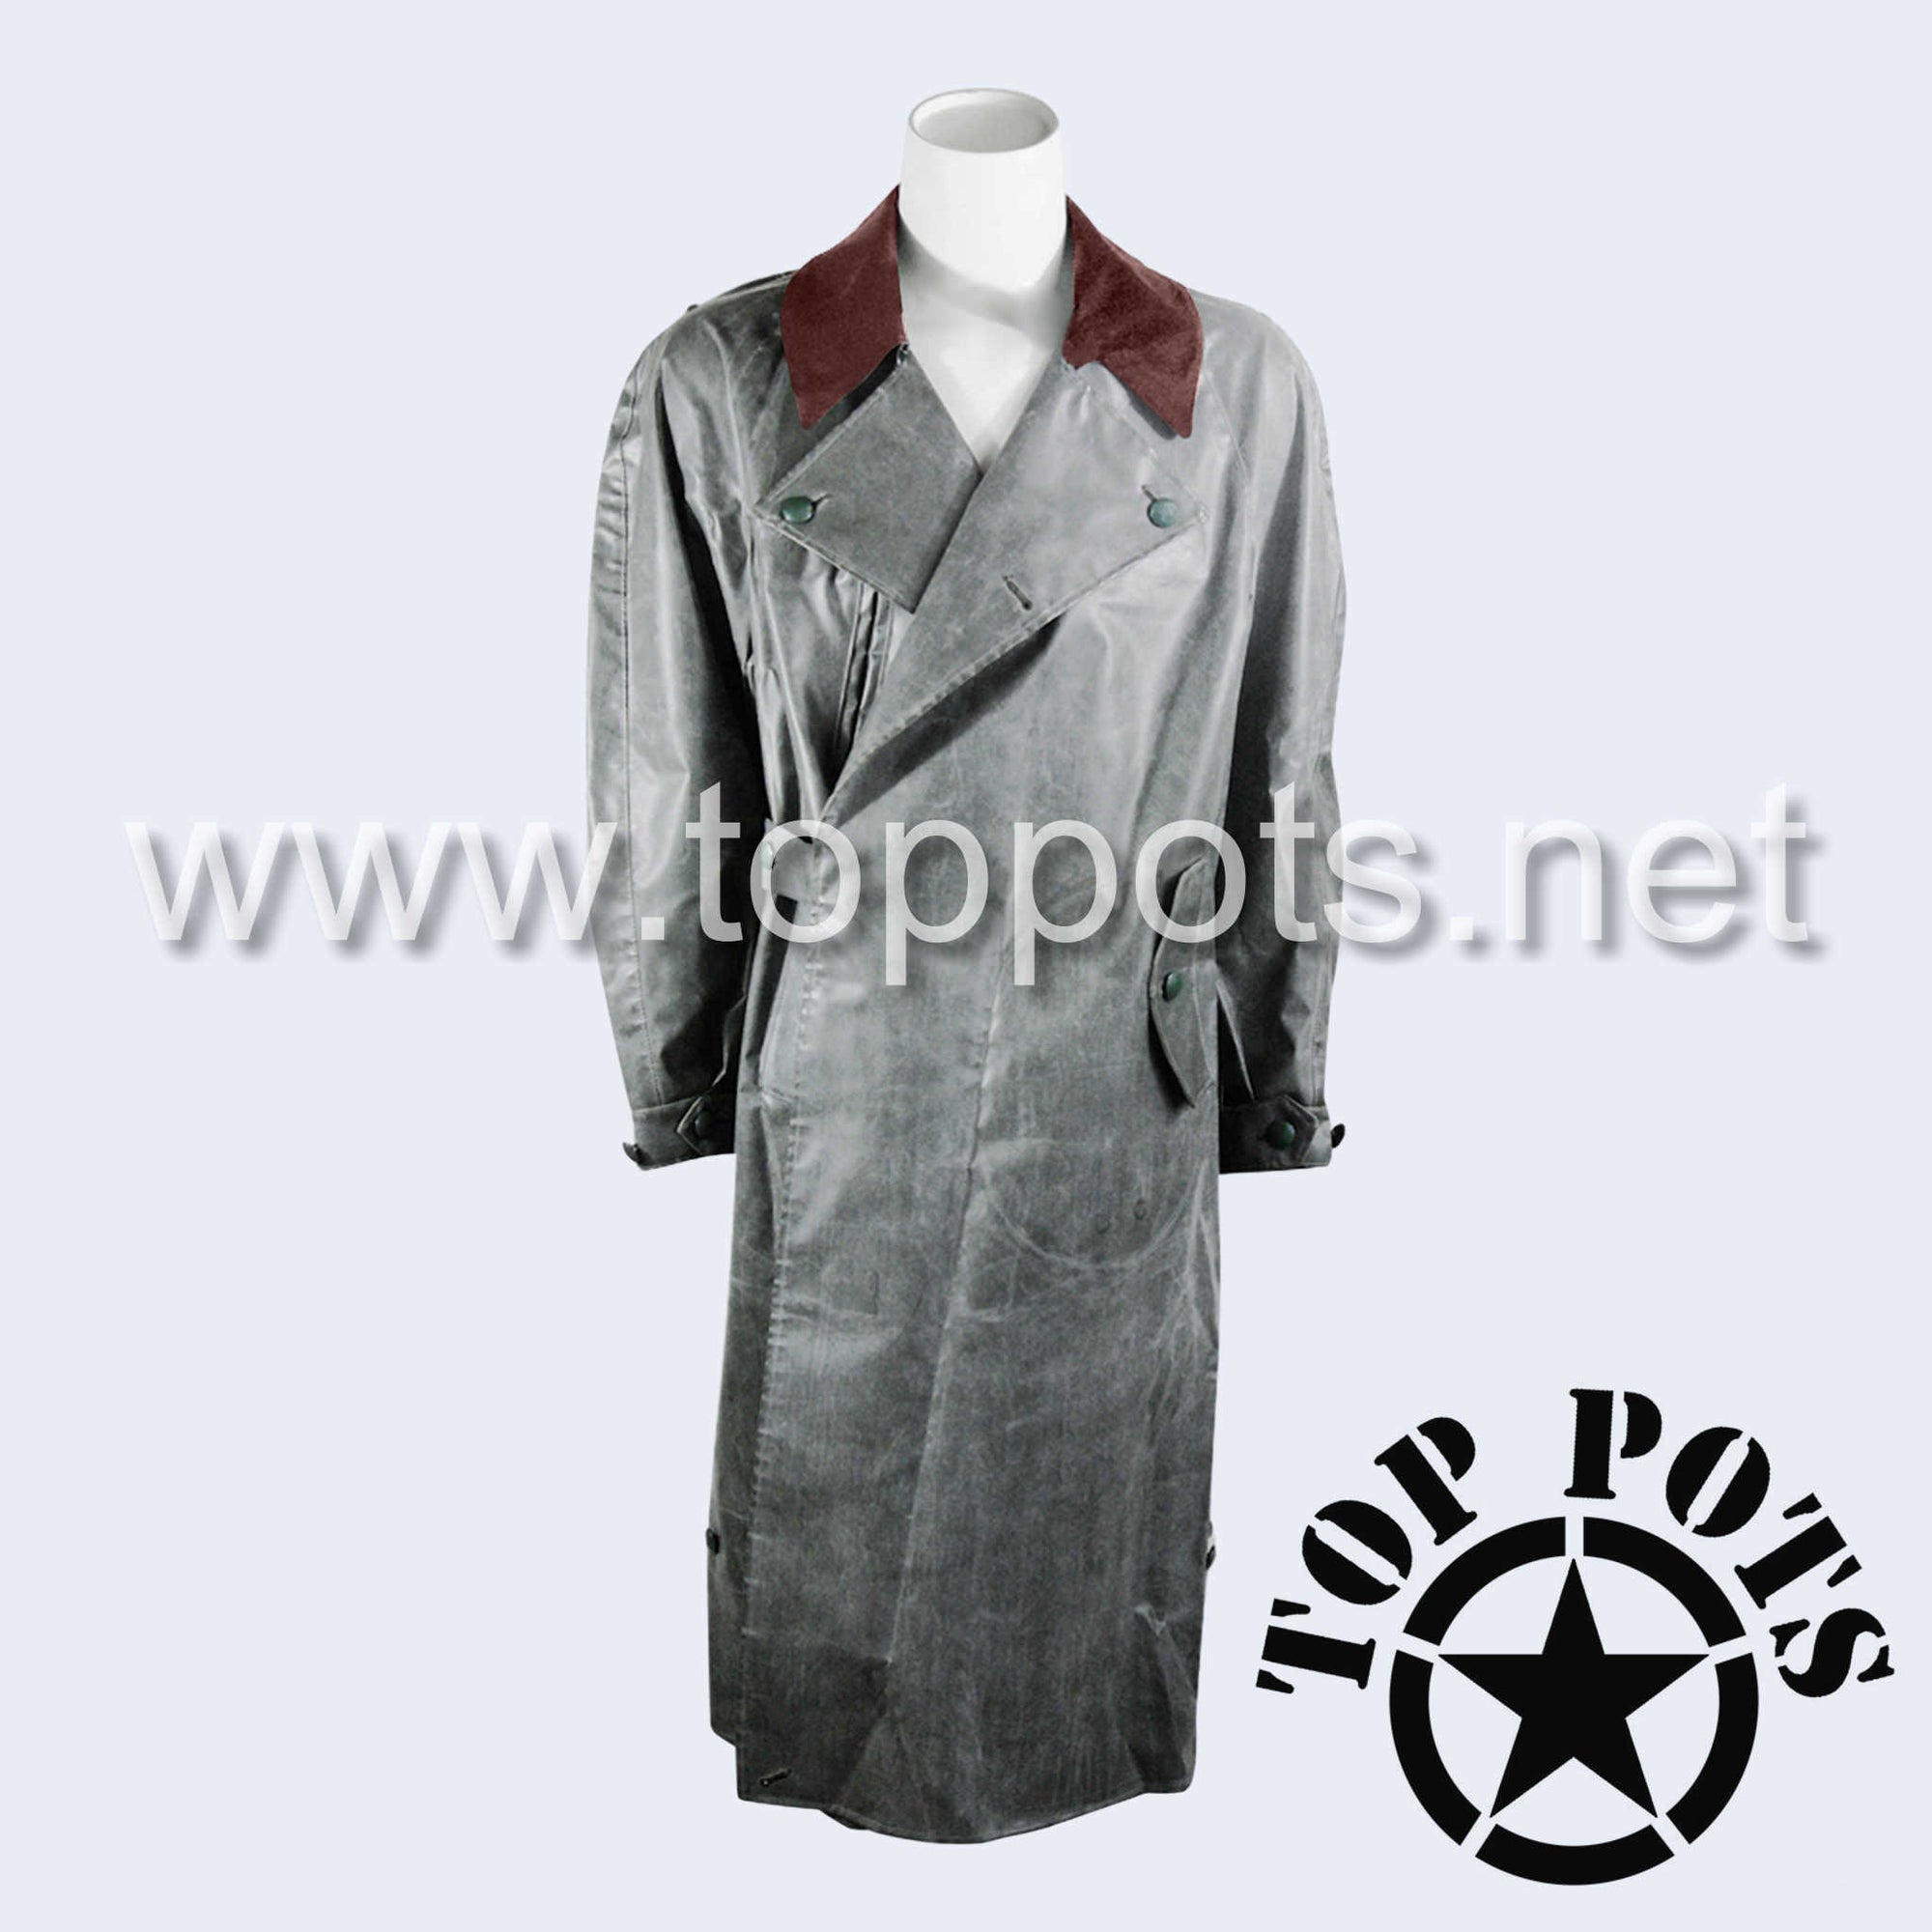 WWII German Army Waffen SS Uniform Motorcycle Rubberized Raincoat Overcoat Jacket - Field Police